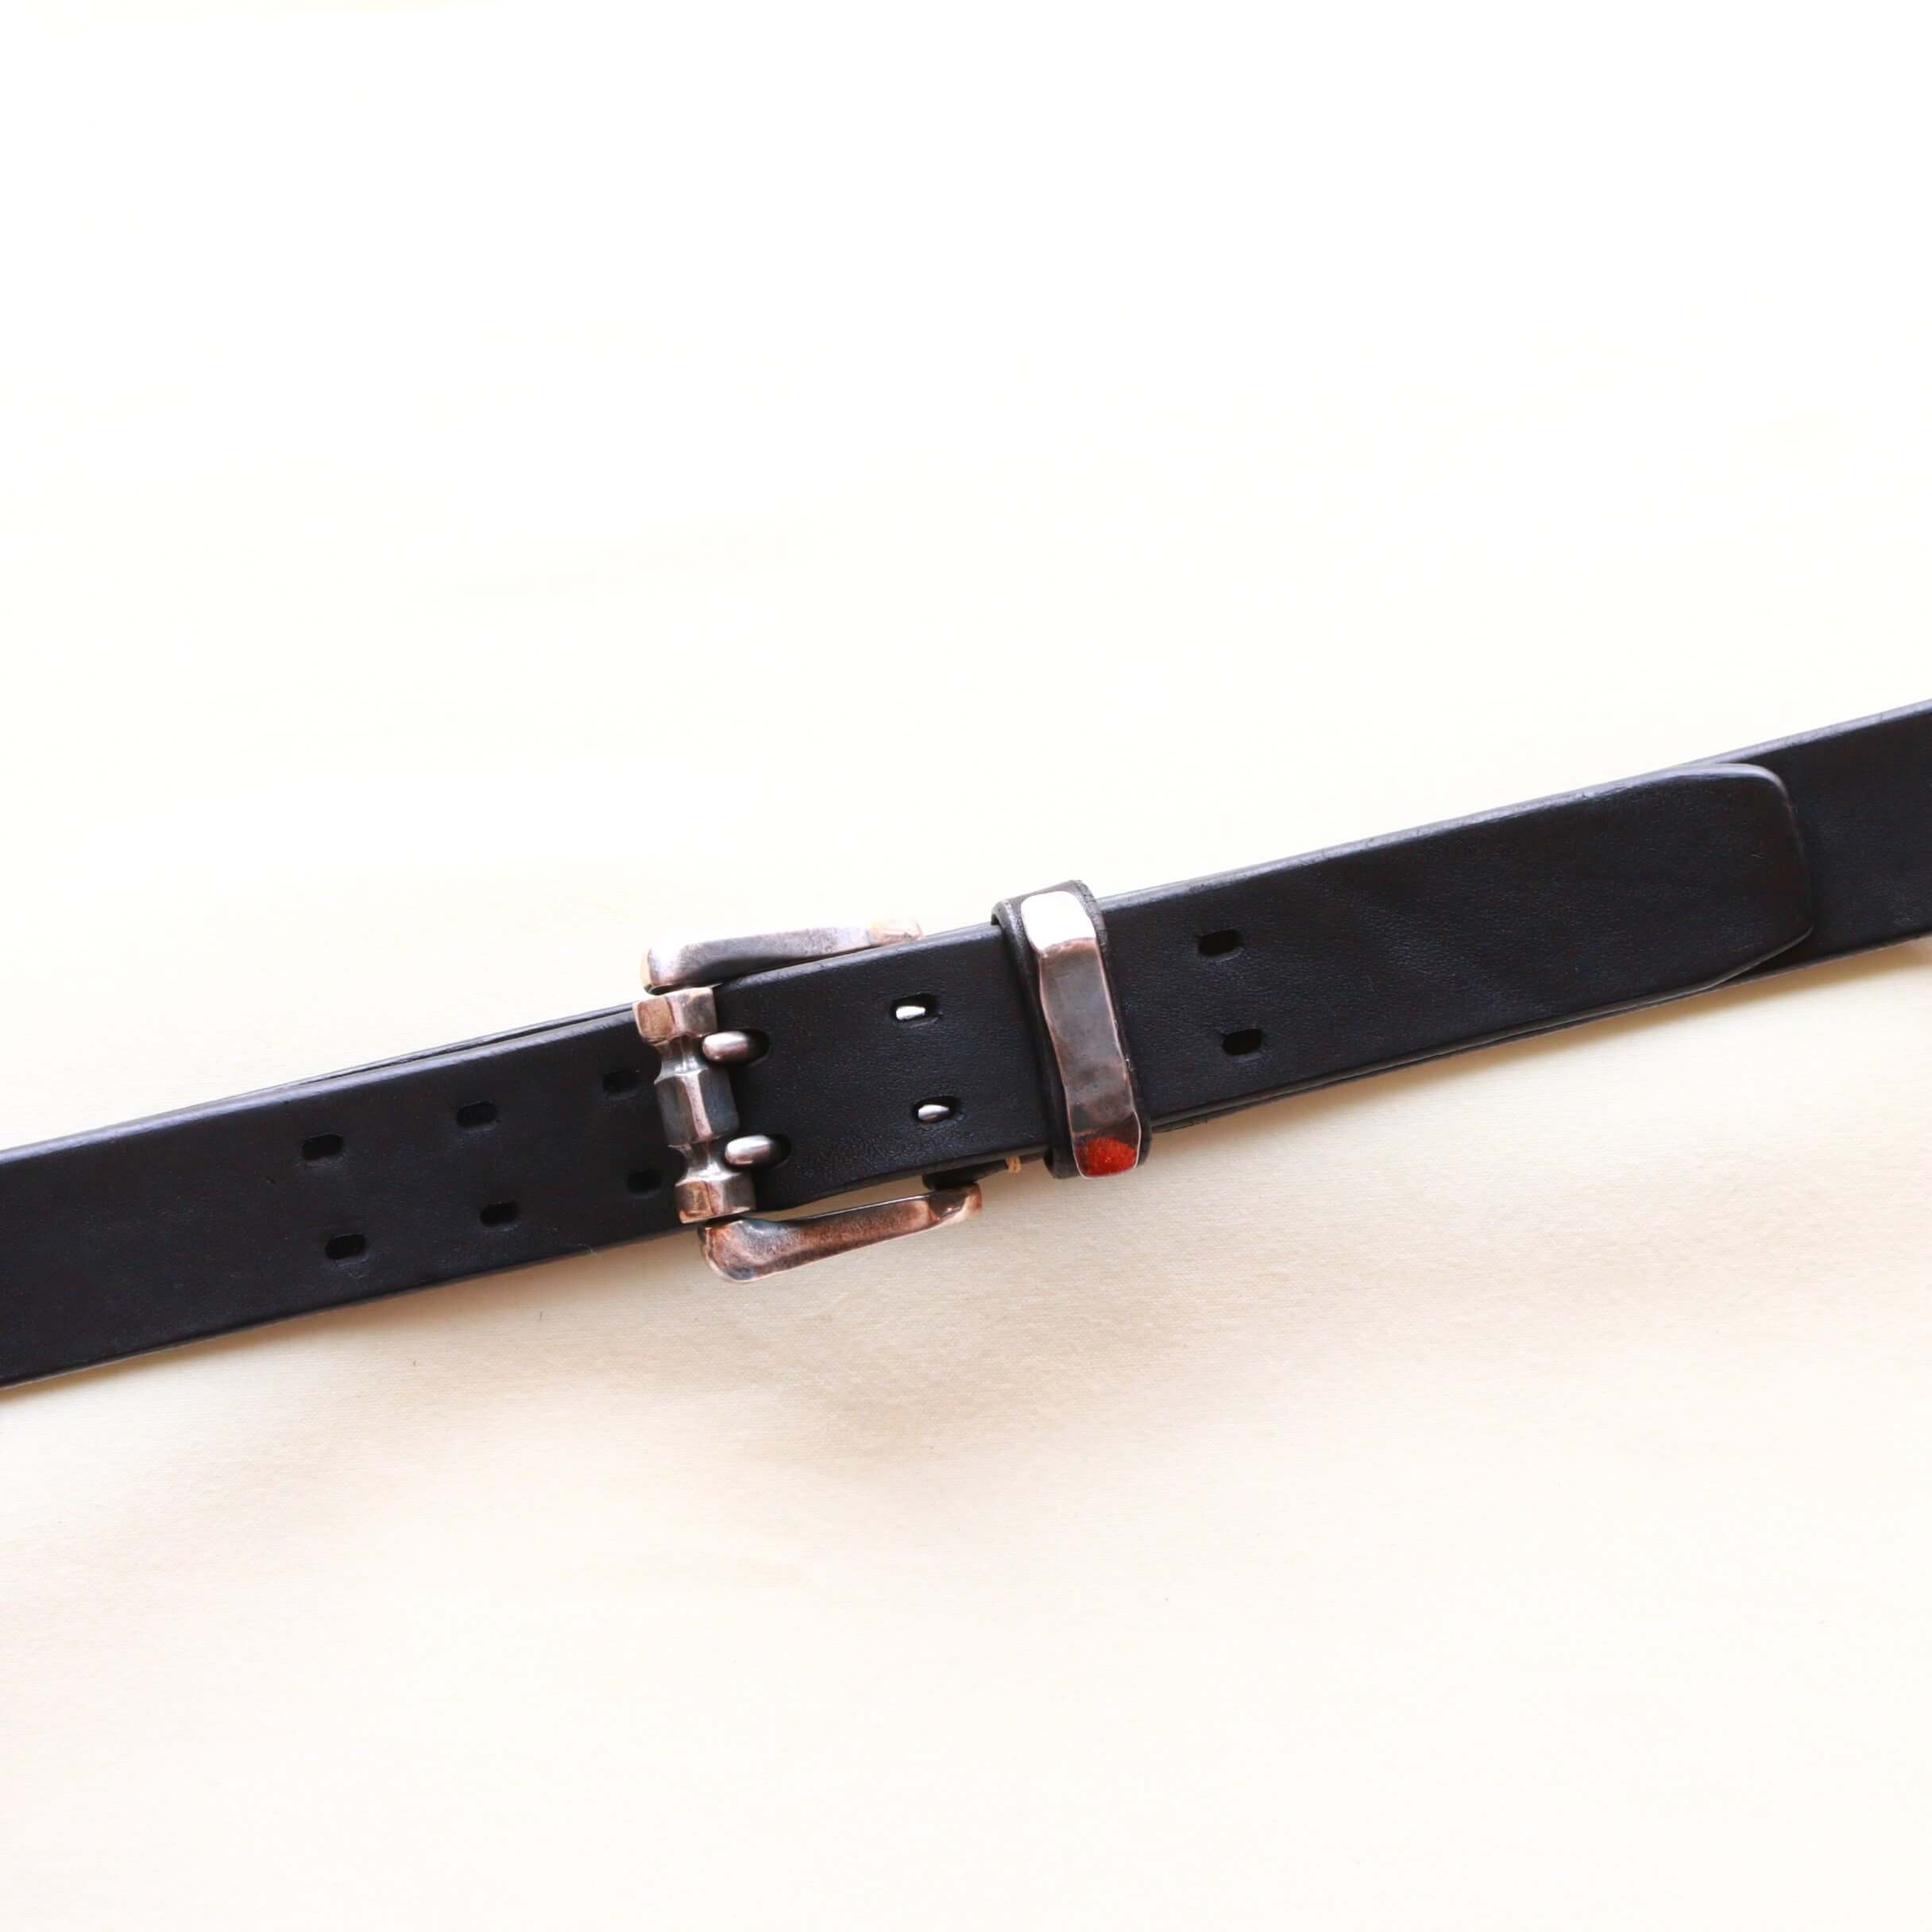 Vintage Works ヴィンテージワークス Leather belt 7Hole レザーベルト 7ホール DH5669